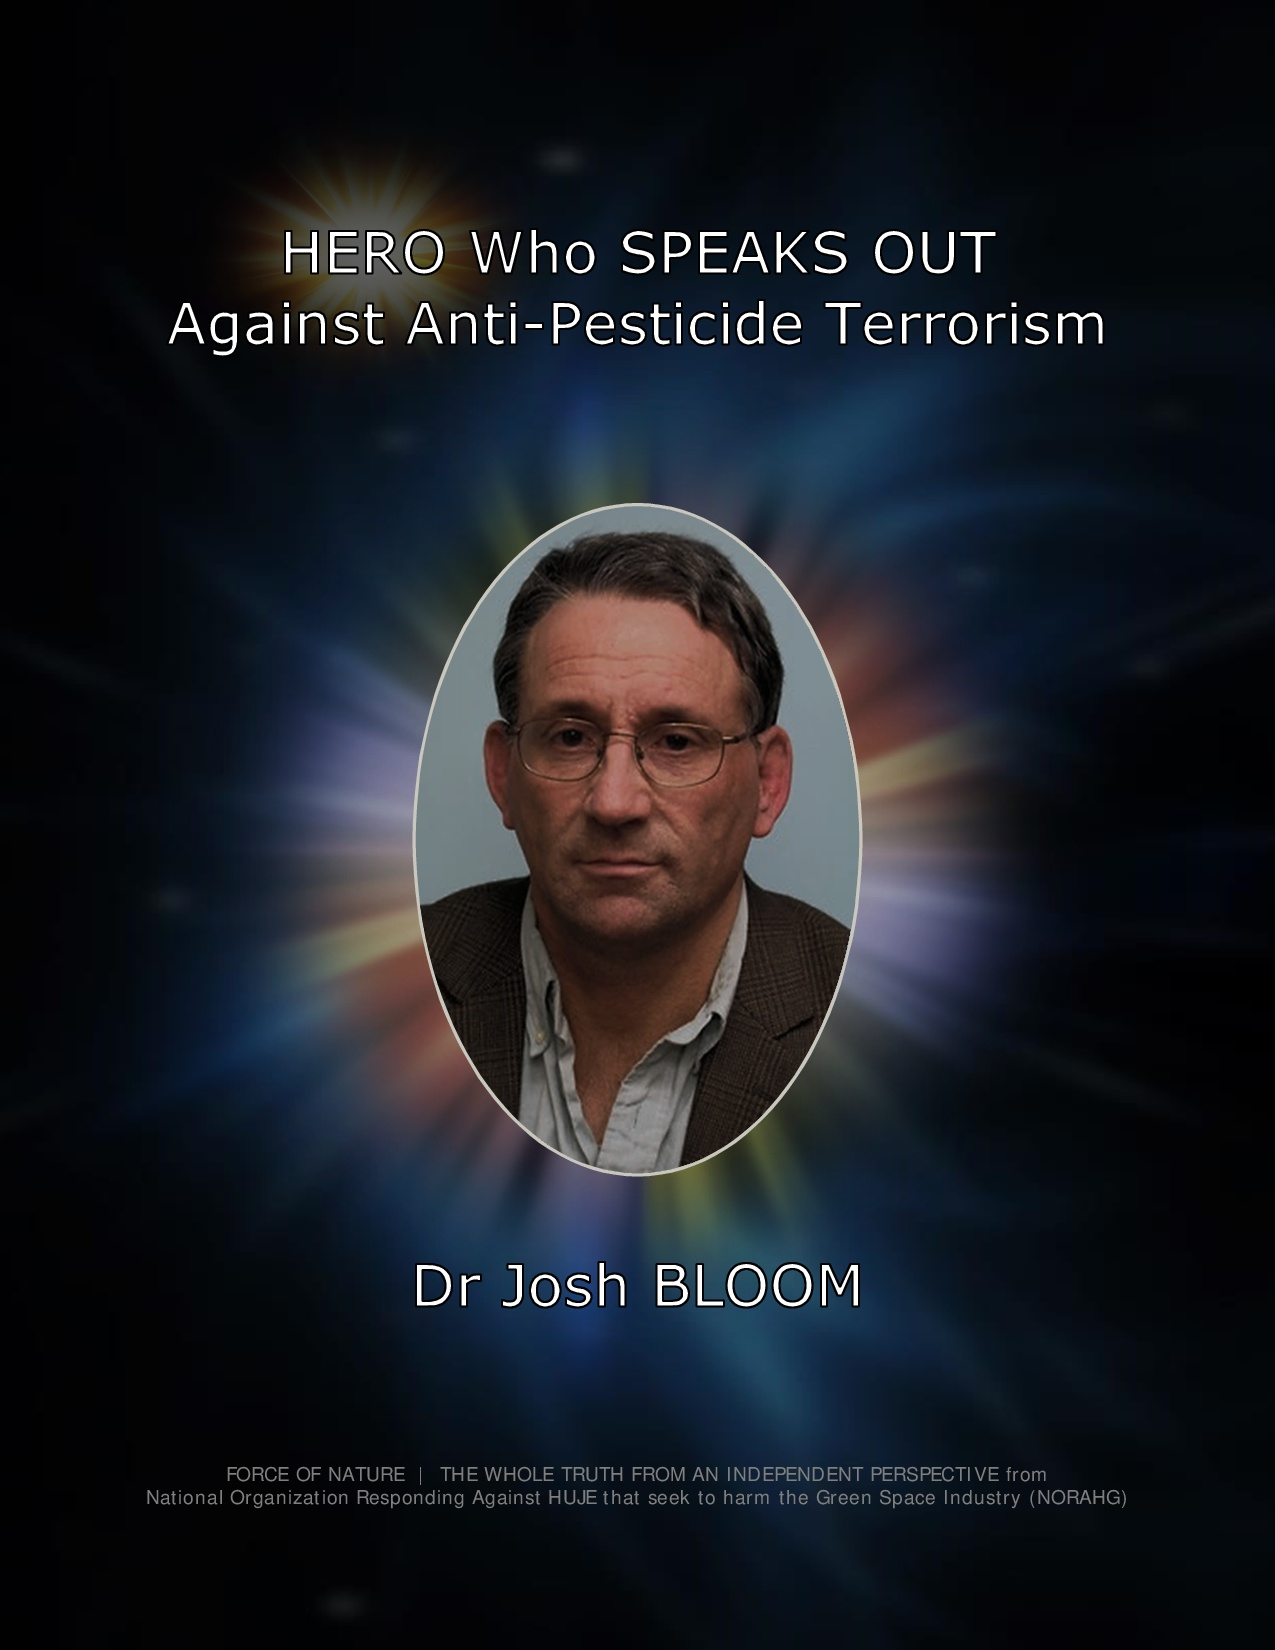 BLOOM, Dr Josh